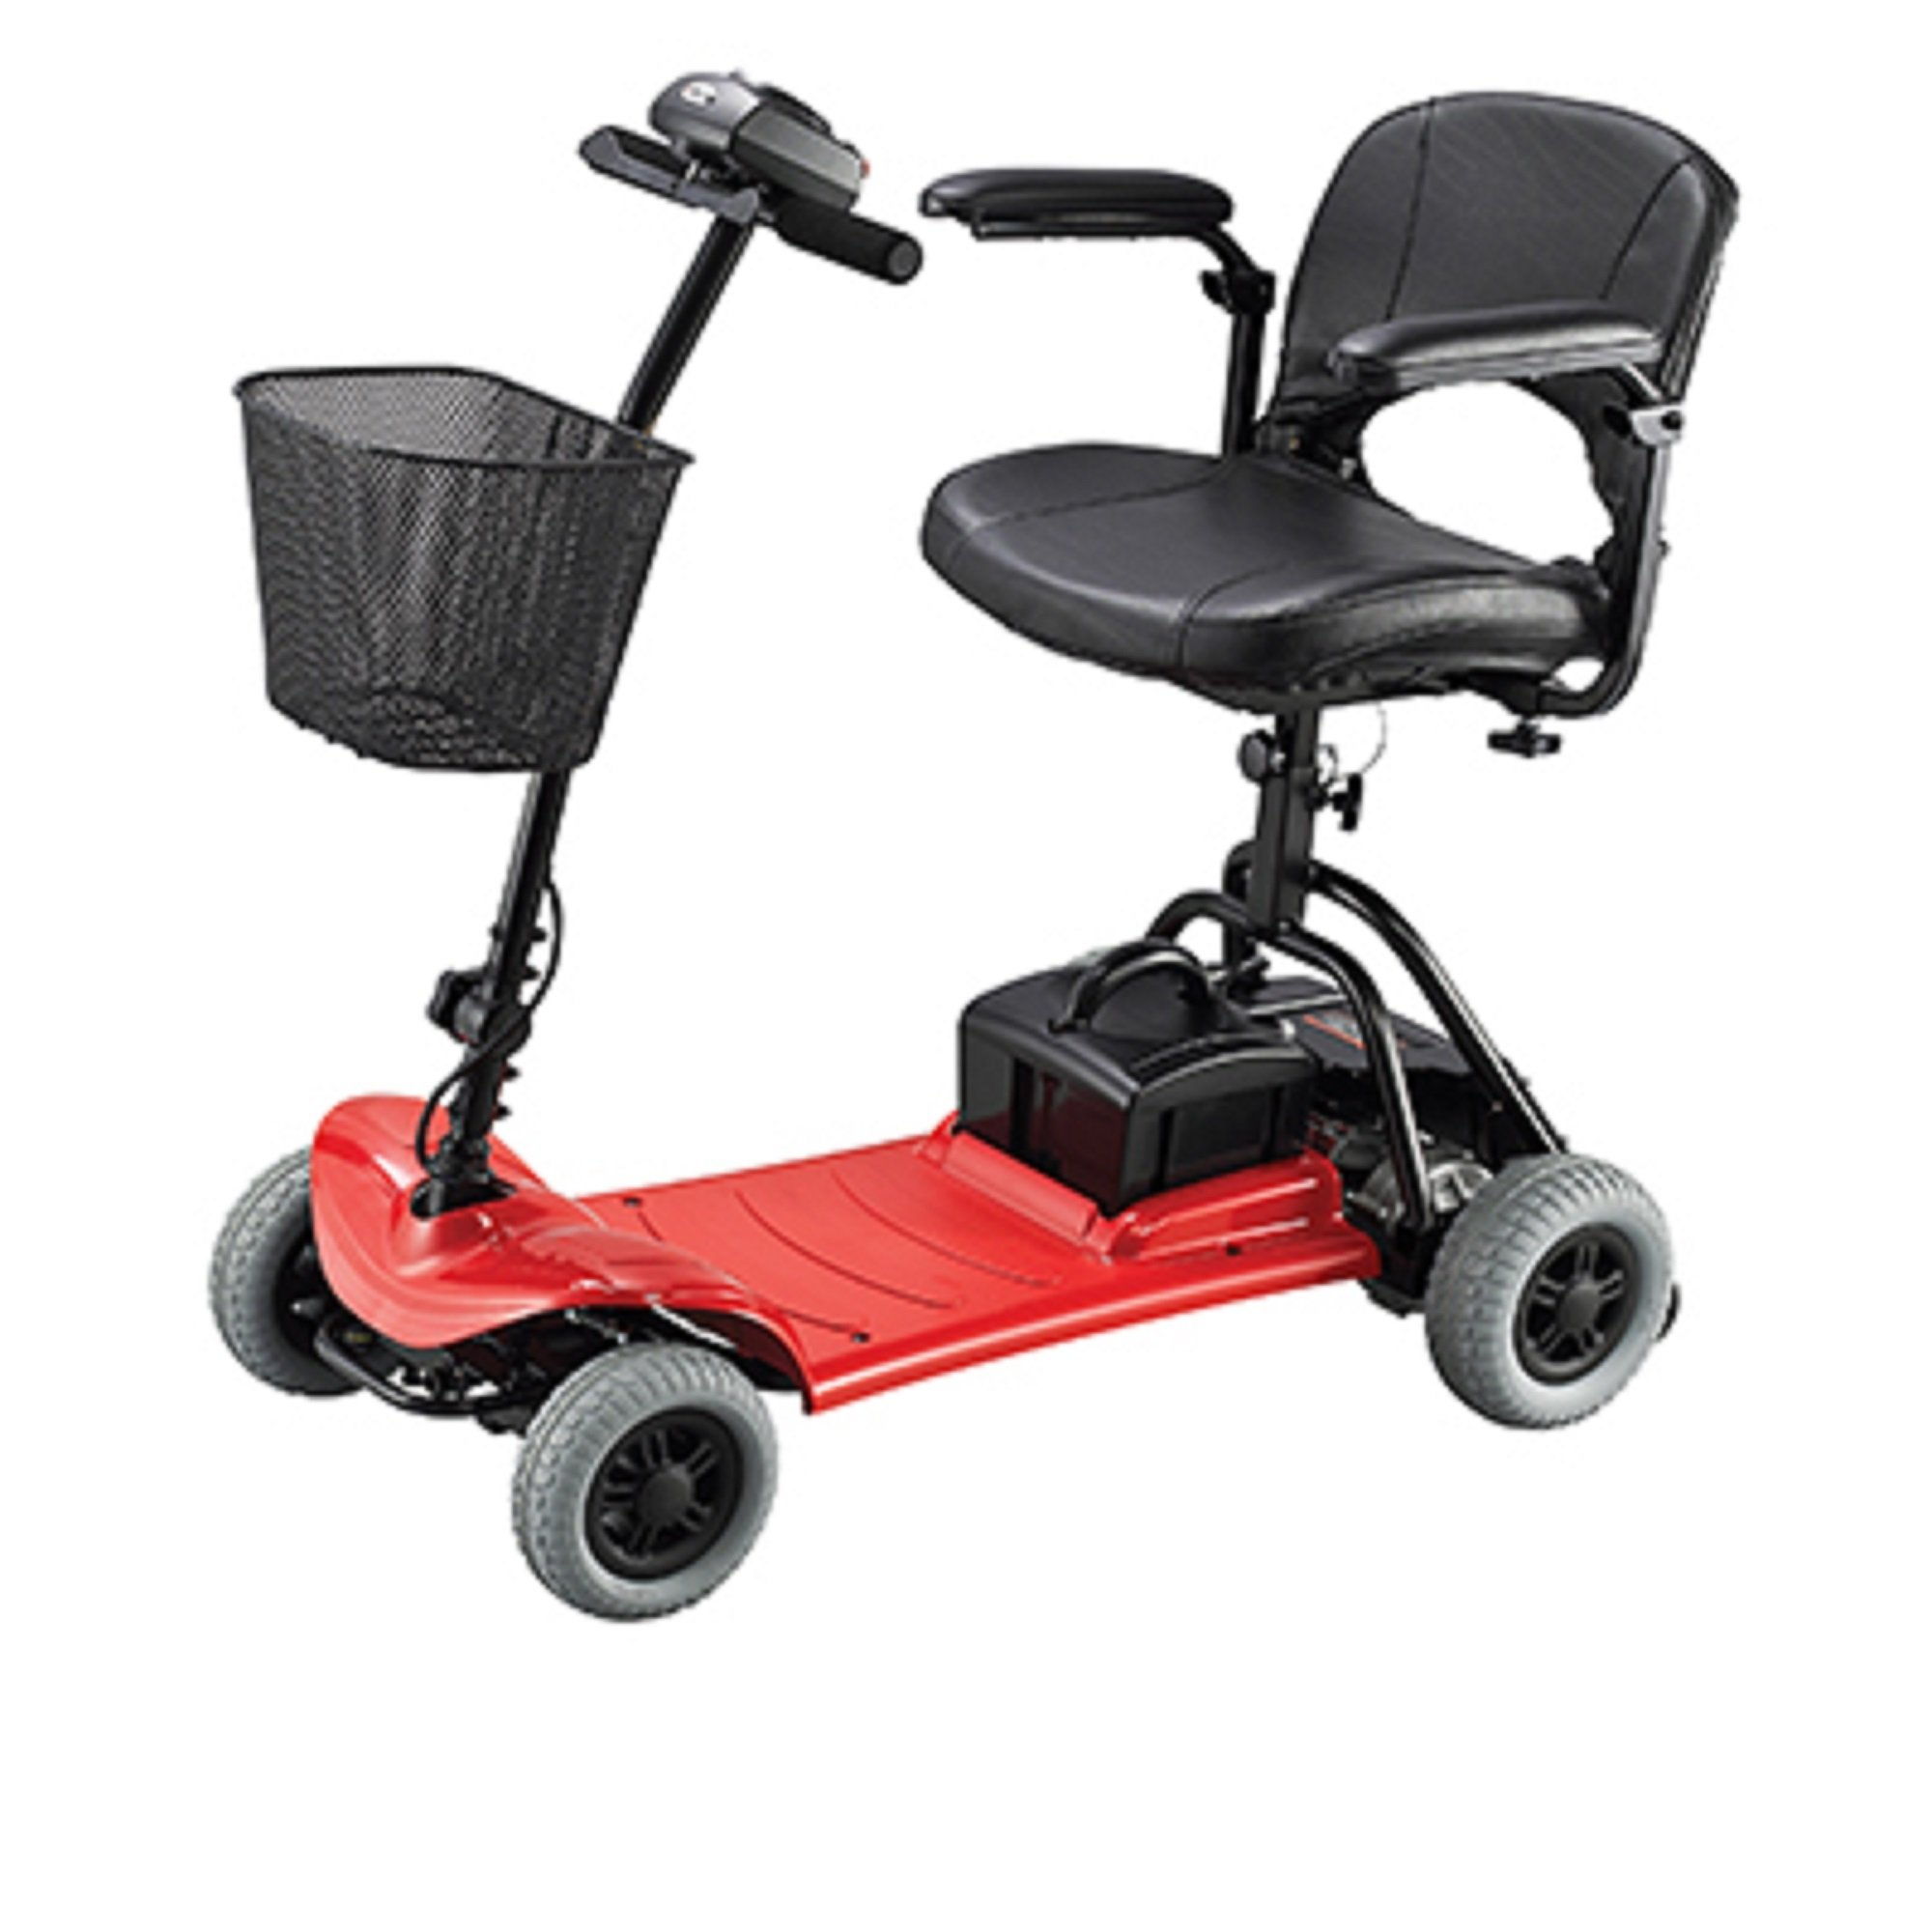 Merits Health Products - Roadster - 4-Wheel Scooter - 15''W x 15''D - Red